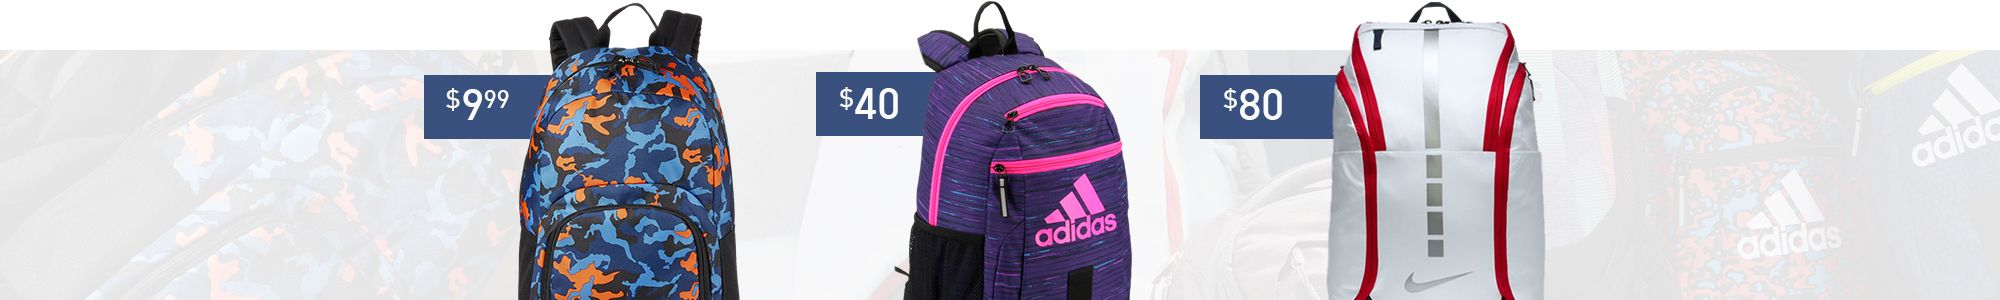 Backpacks | School-Ready Styles From Top Brands